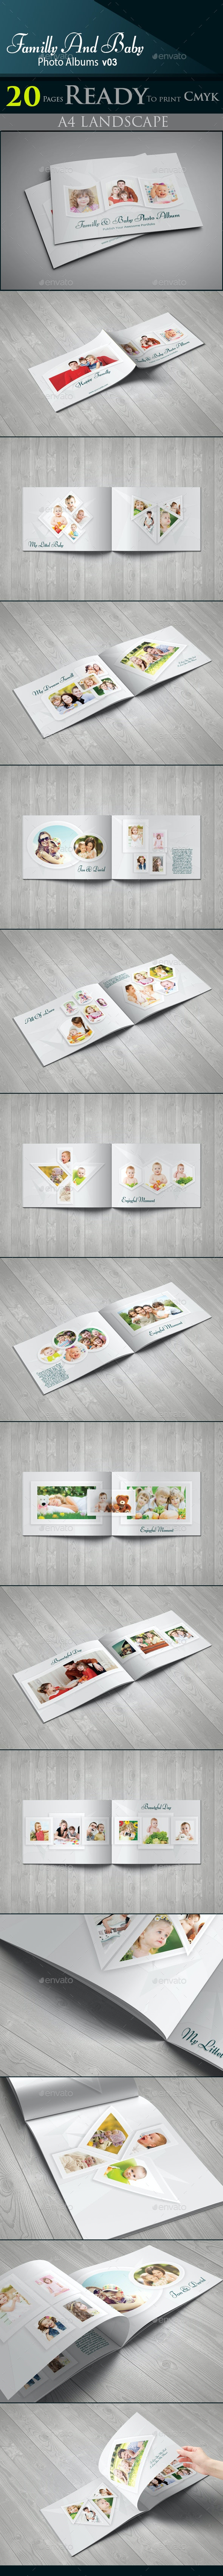 Familly And Baby Photo Albums V03 - Photo Albums Print Templates